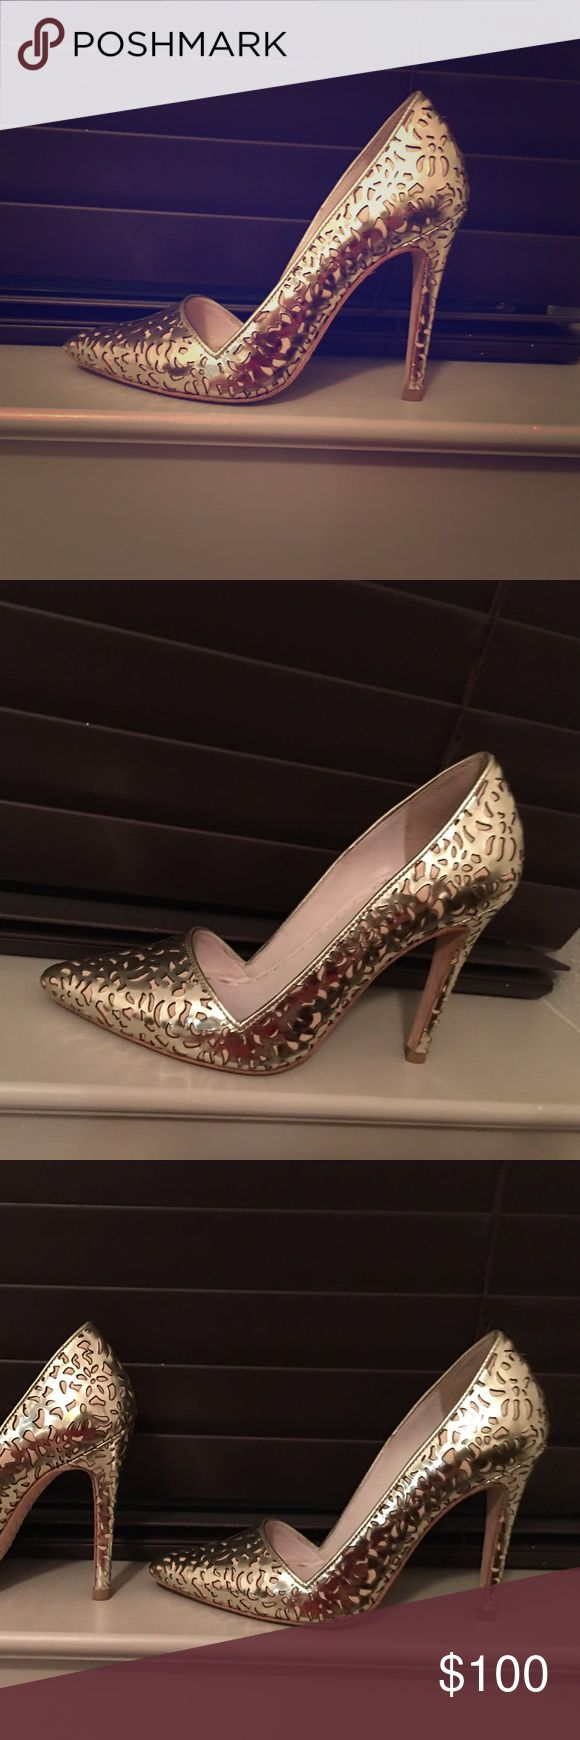 Alice + Olivia metallic gold stilettos Beautiful metallic gold stilettos. These are the shoes that will MAKE the outfit. You will WOW every room you walk into with these shoes! Alice + Olivia Shoes Heels